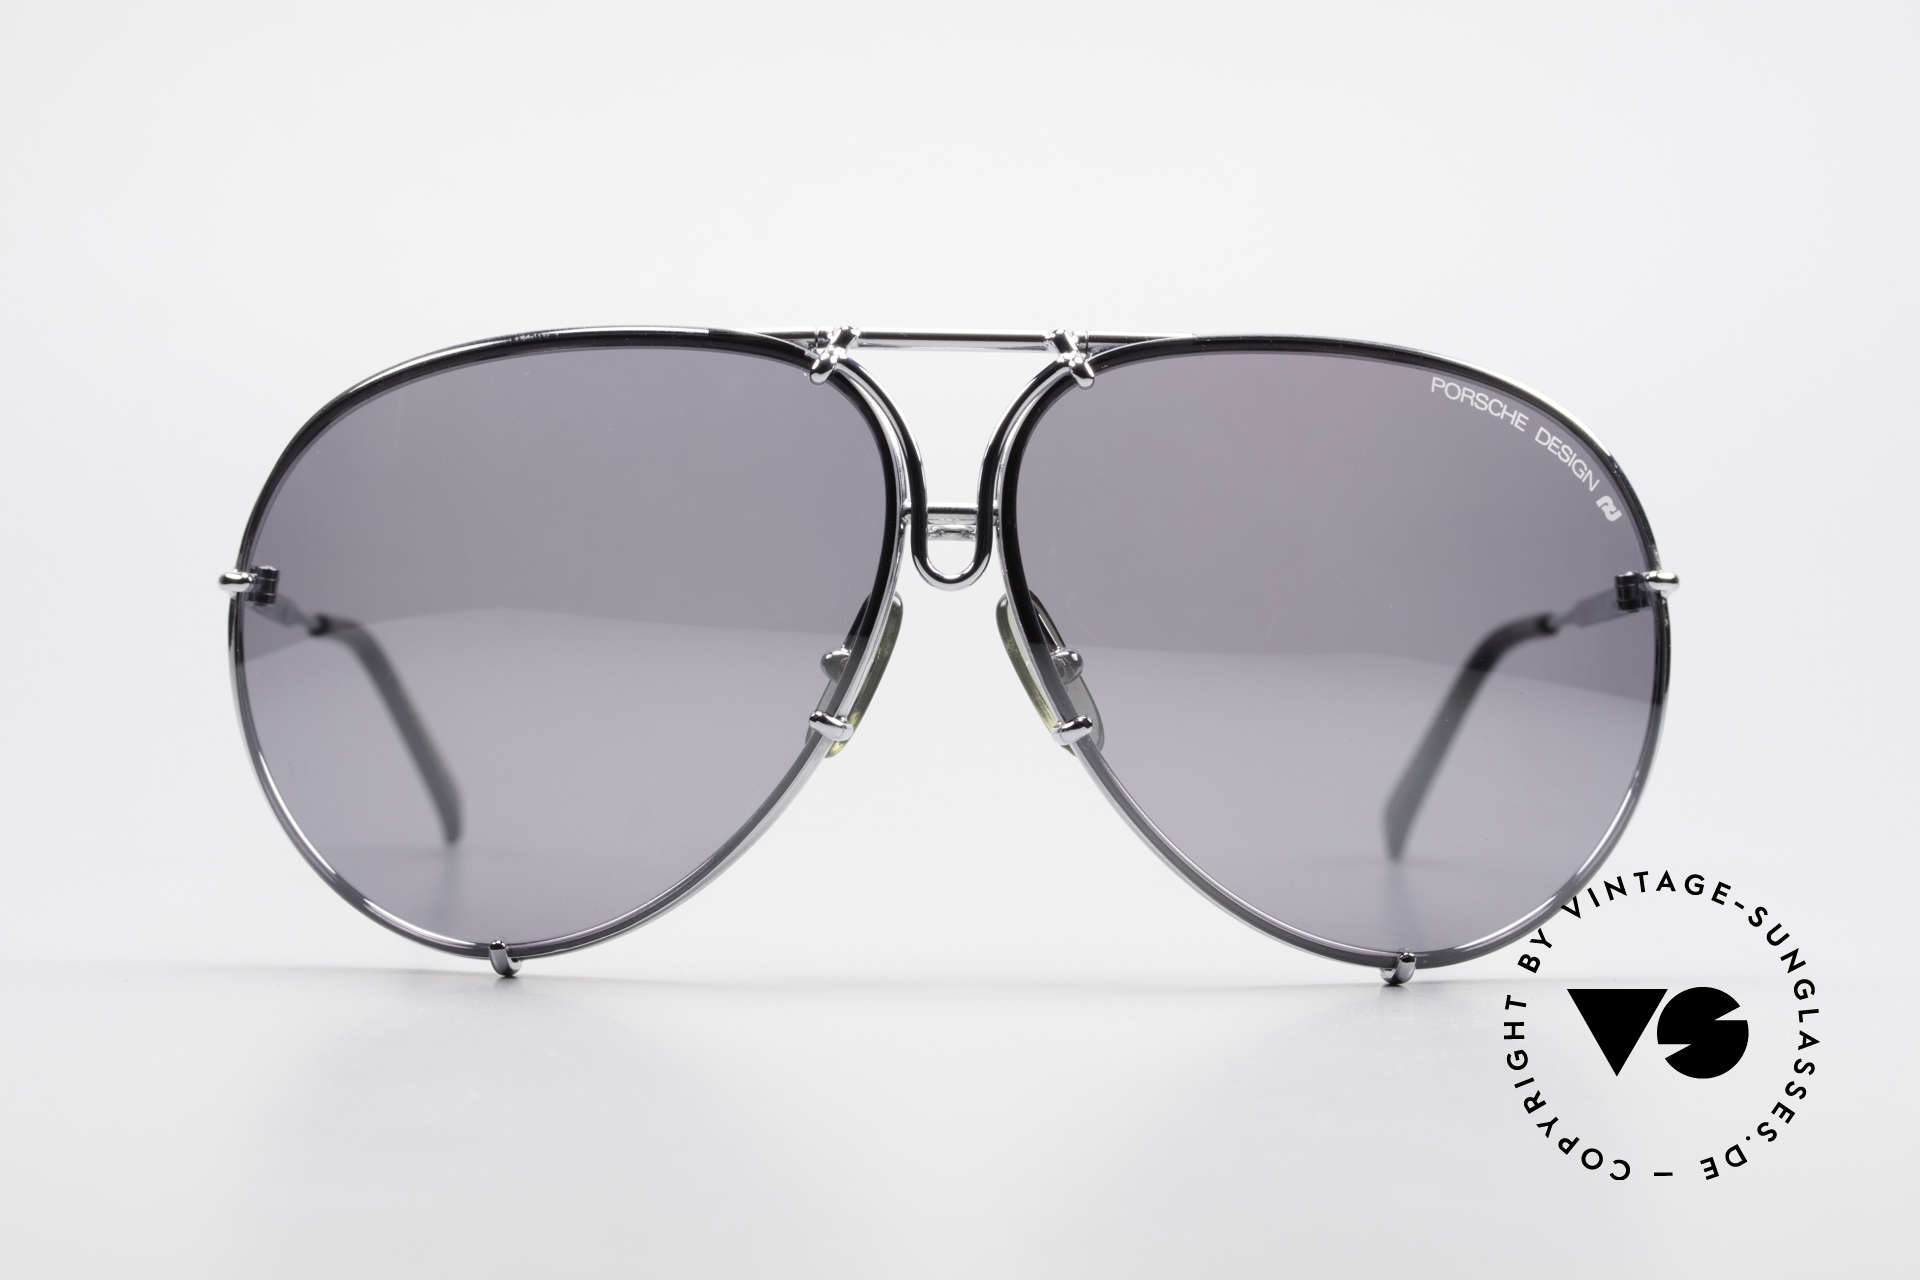 Porsche 5623 Silver Mirrored Sun Lenses, the legend with interchangeable lenses; true vintage, Made for Men and Women